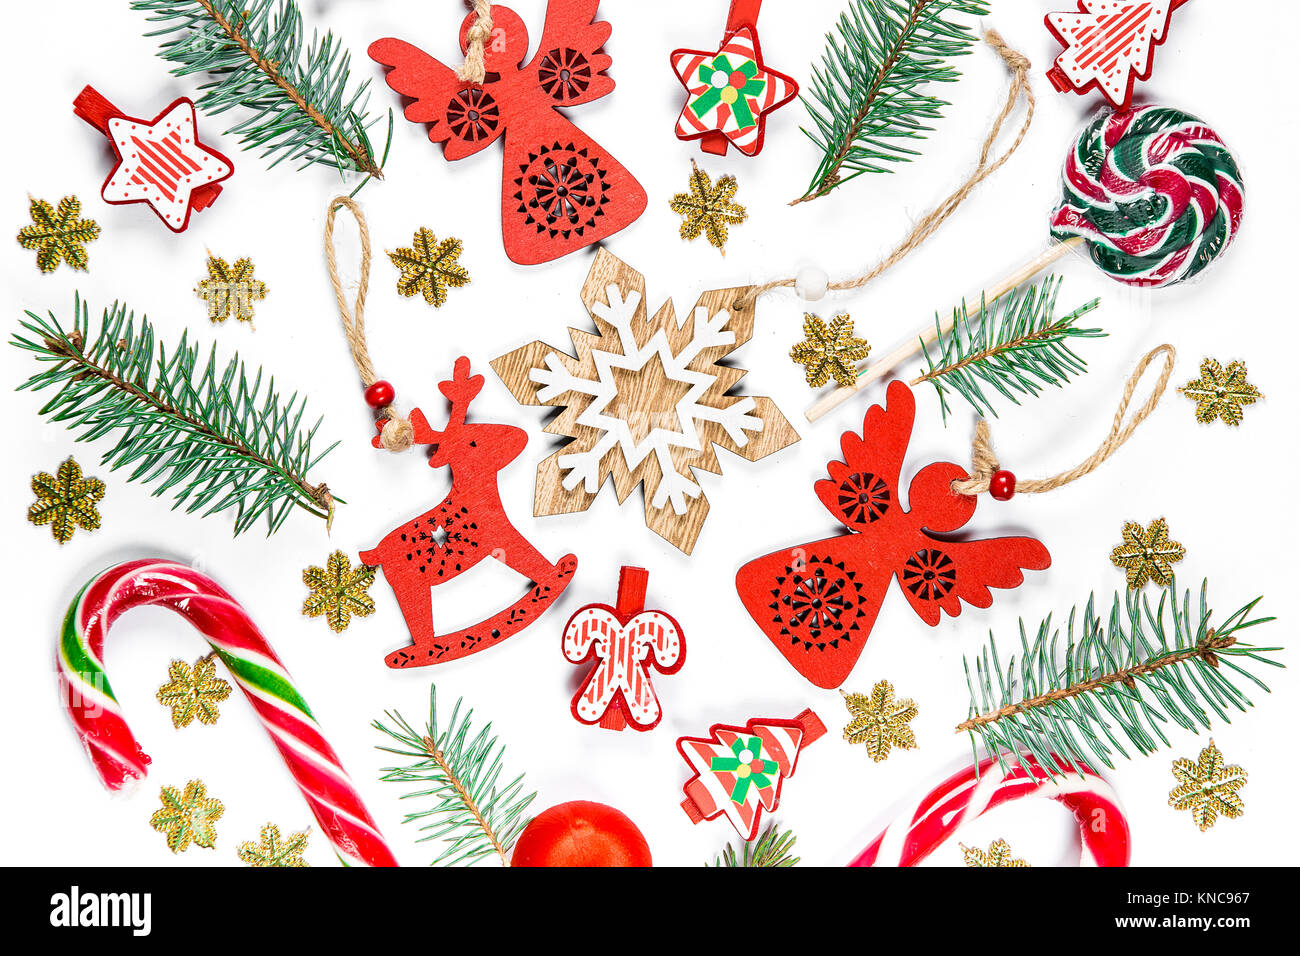 Christmas Disco Clipart.Christmas Background With Gifts Candy New Year Decorations